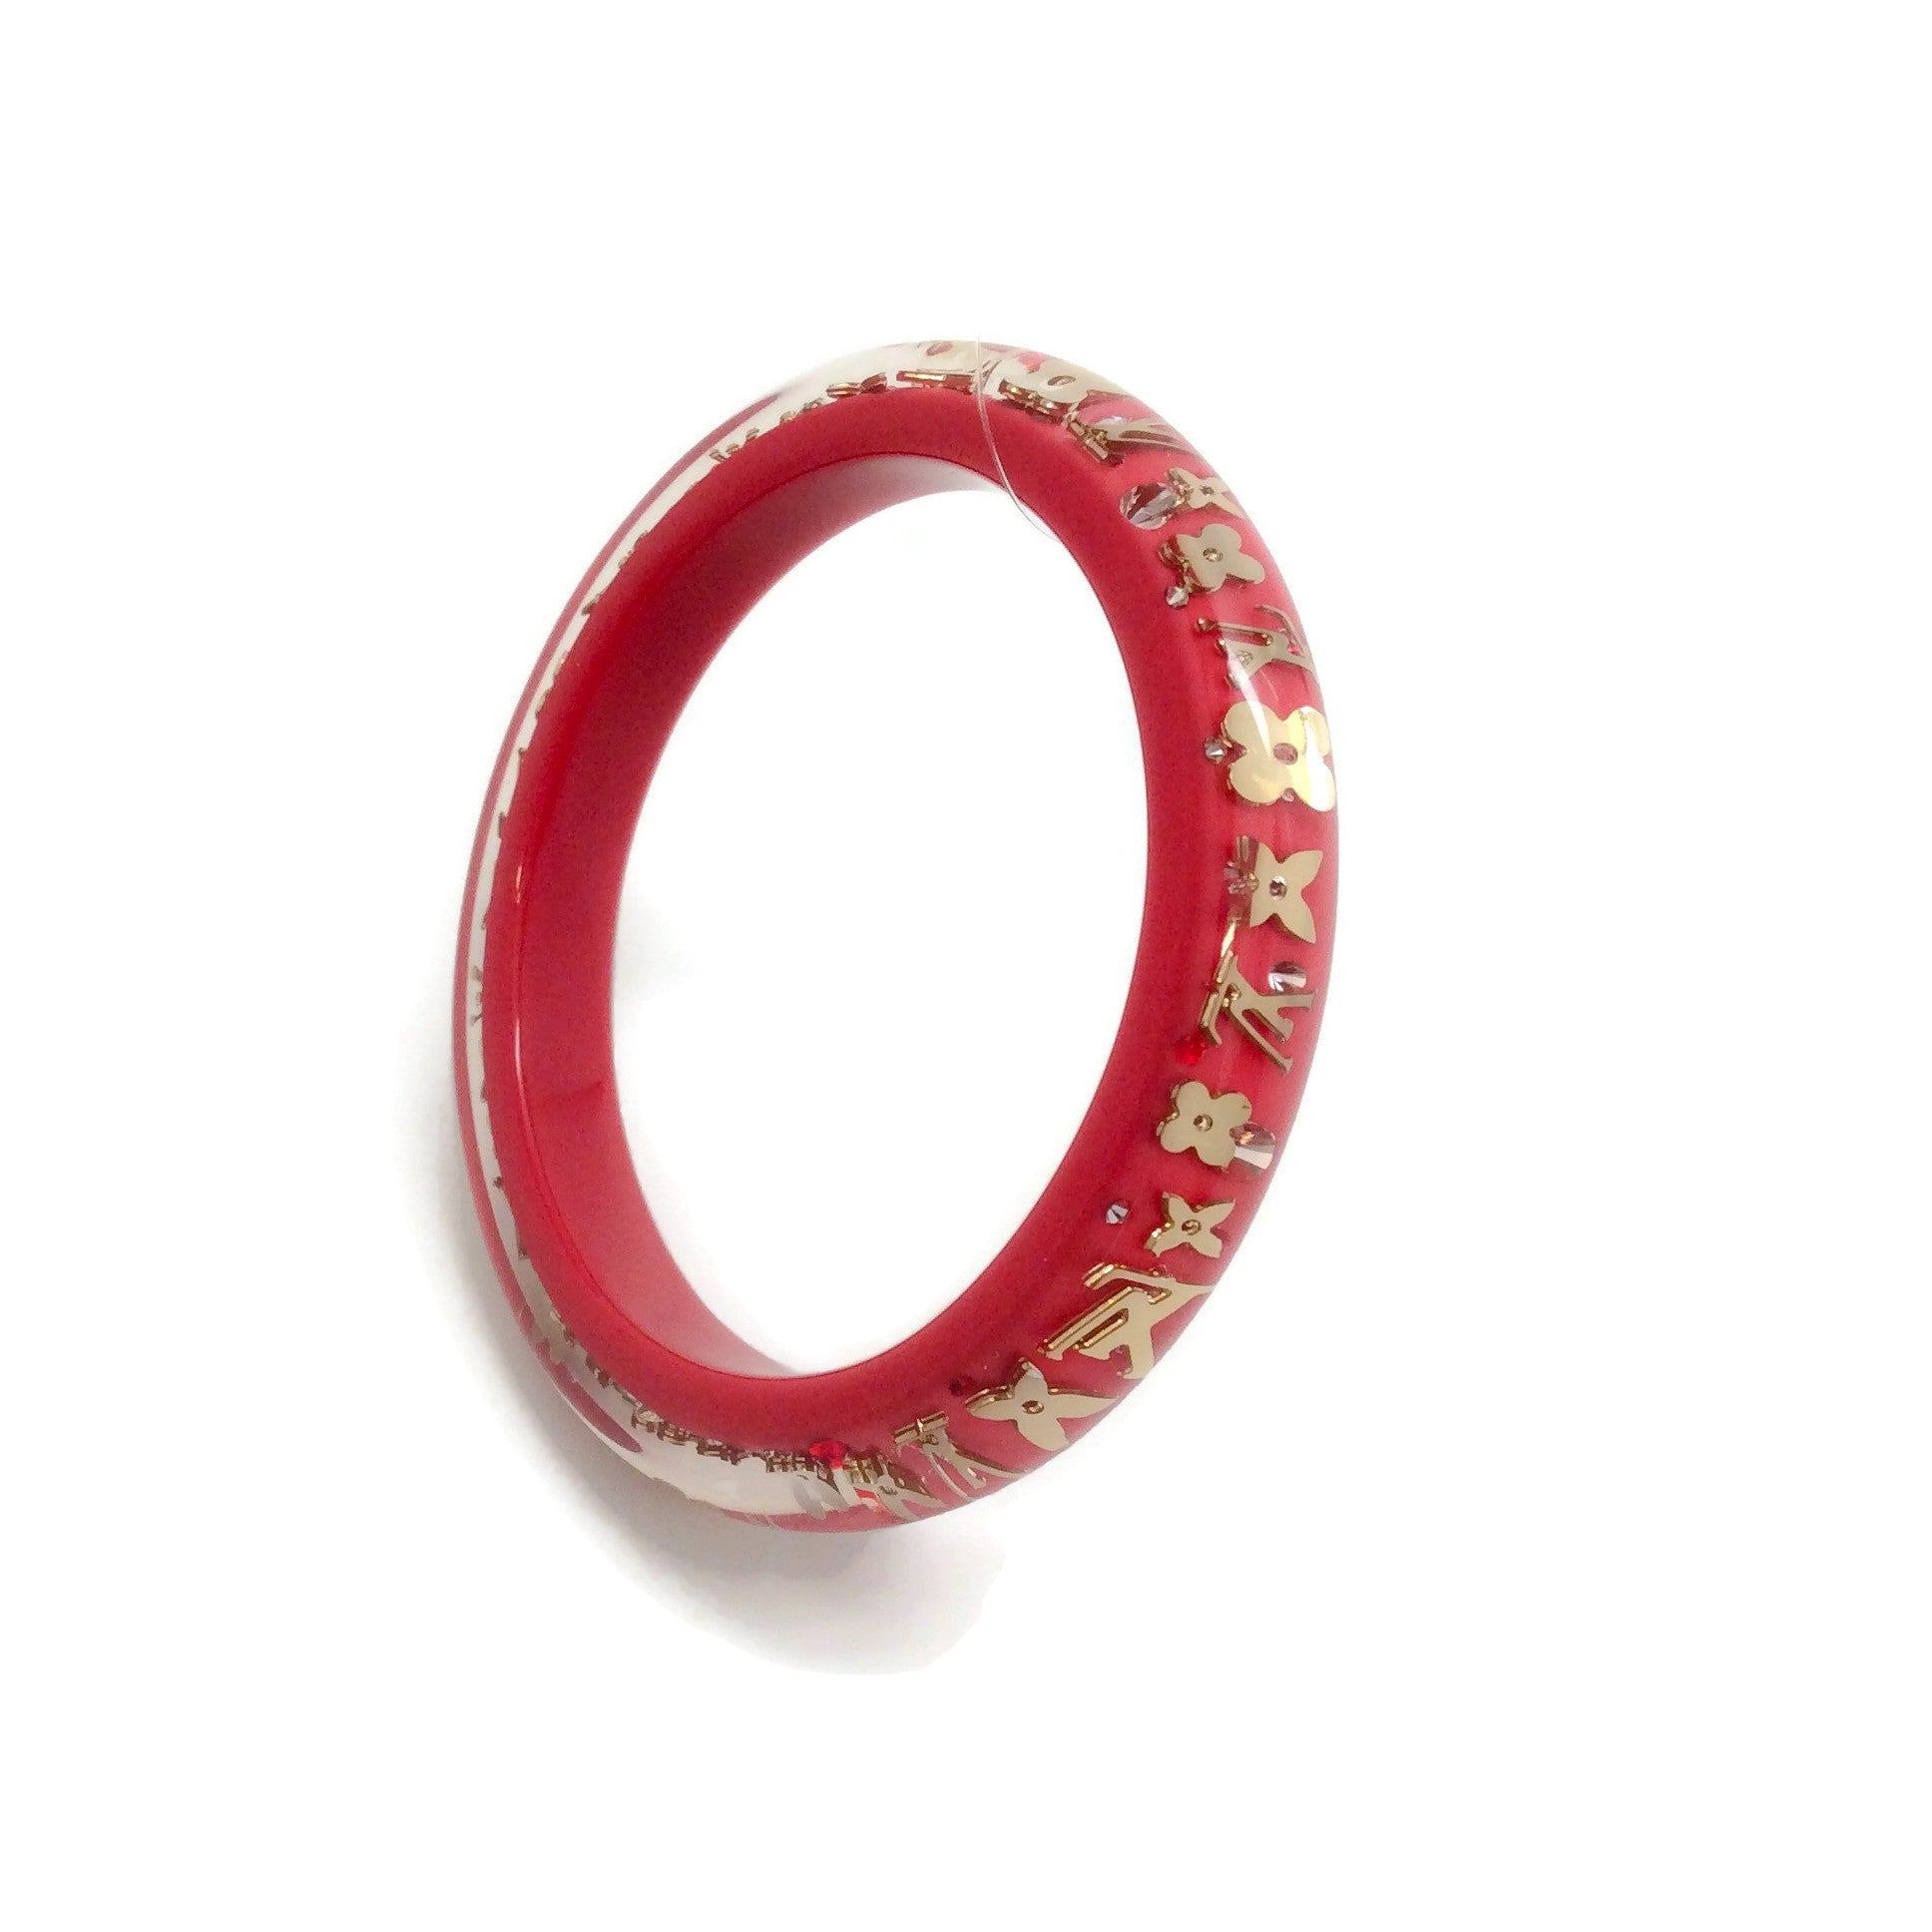 Louis Vuitton Red Inclusion Pm Bracelet